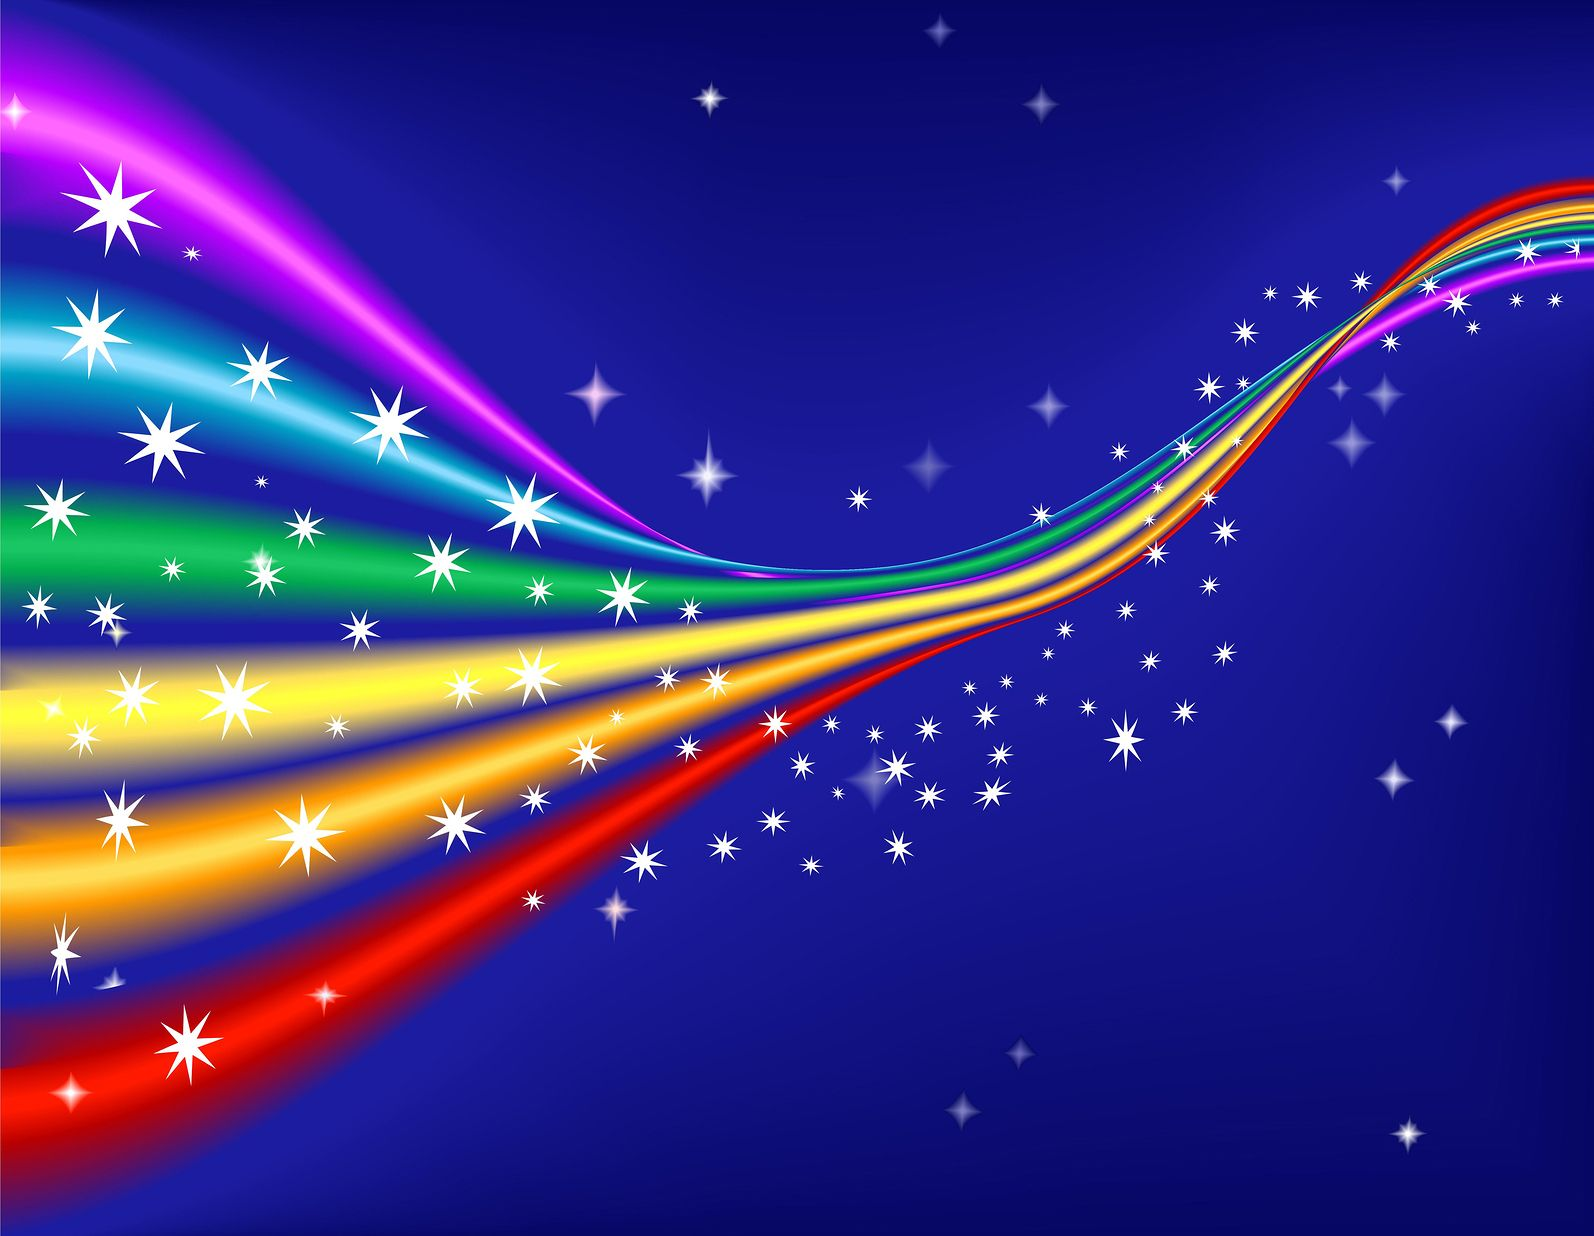 rainbow with stars powerpoint backgrounds templates | rainbows and, Powerpoint templates